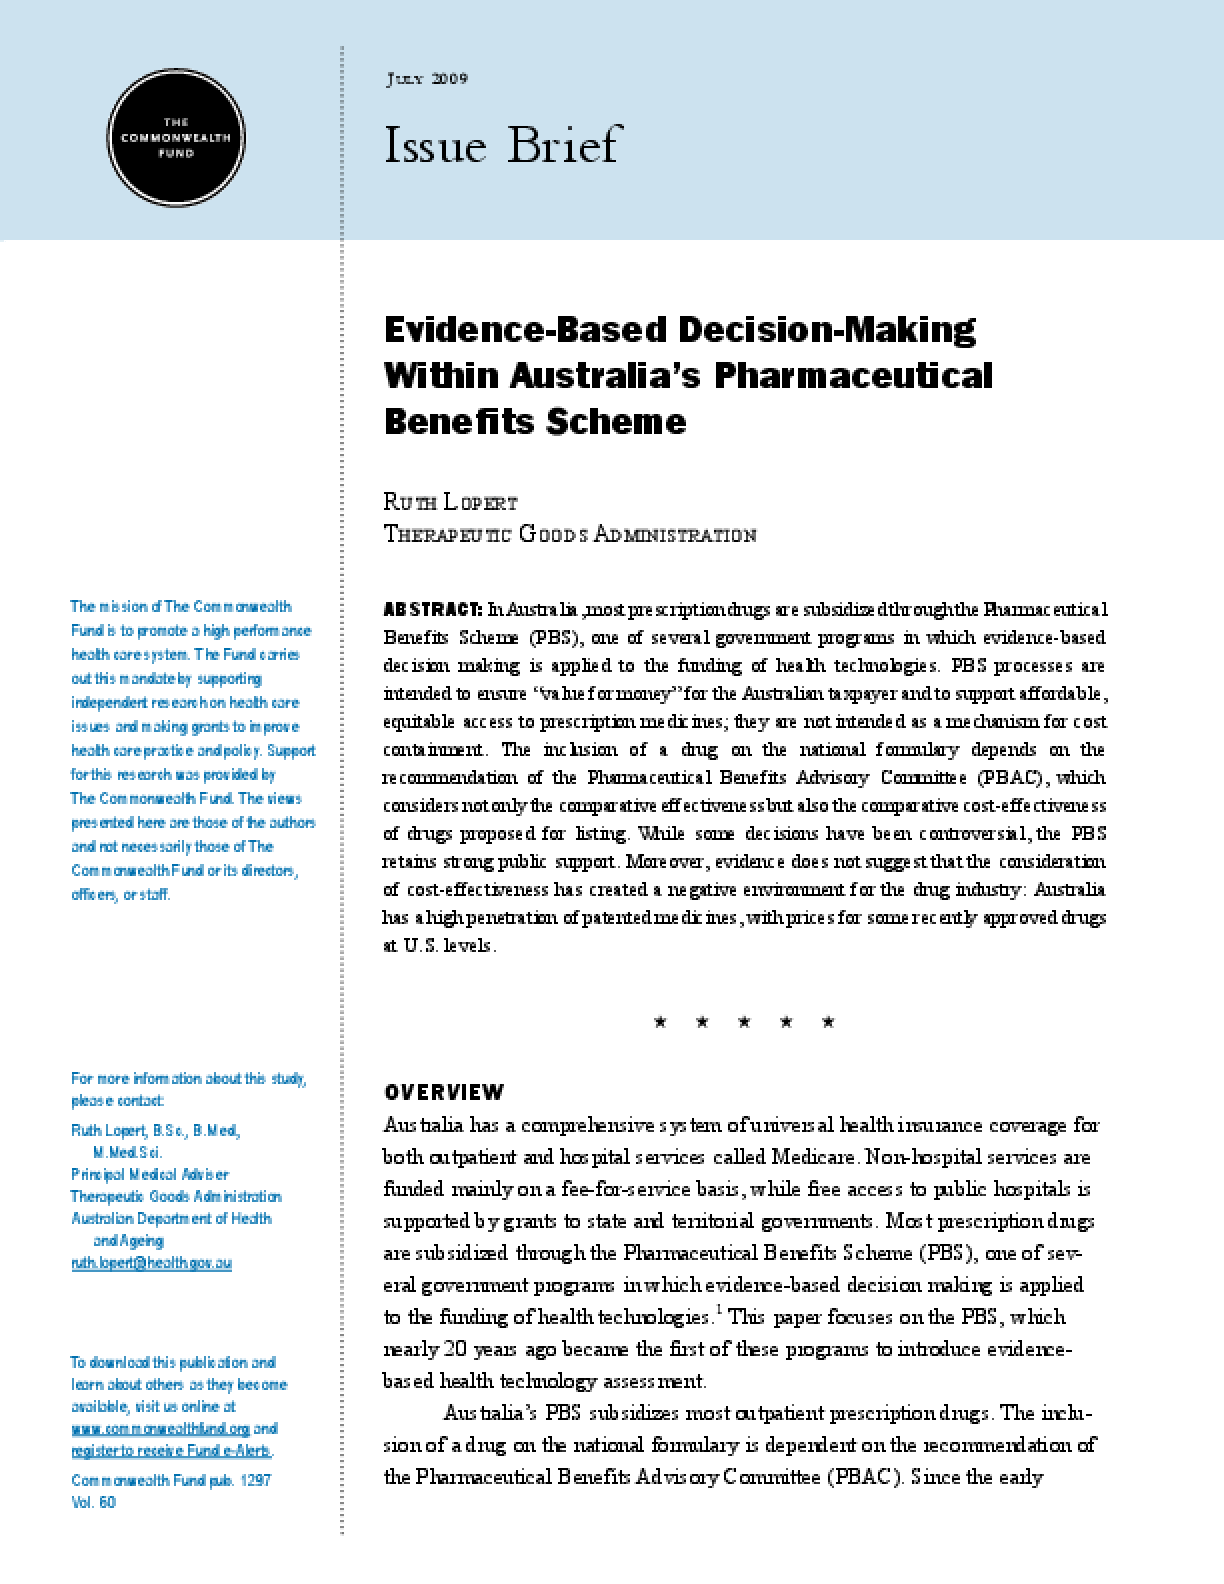 Evidence-Based Decision-Making Within Australia's Pharmaceutical Benefits Scheme